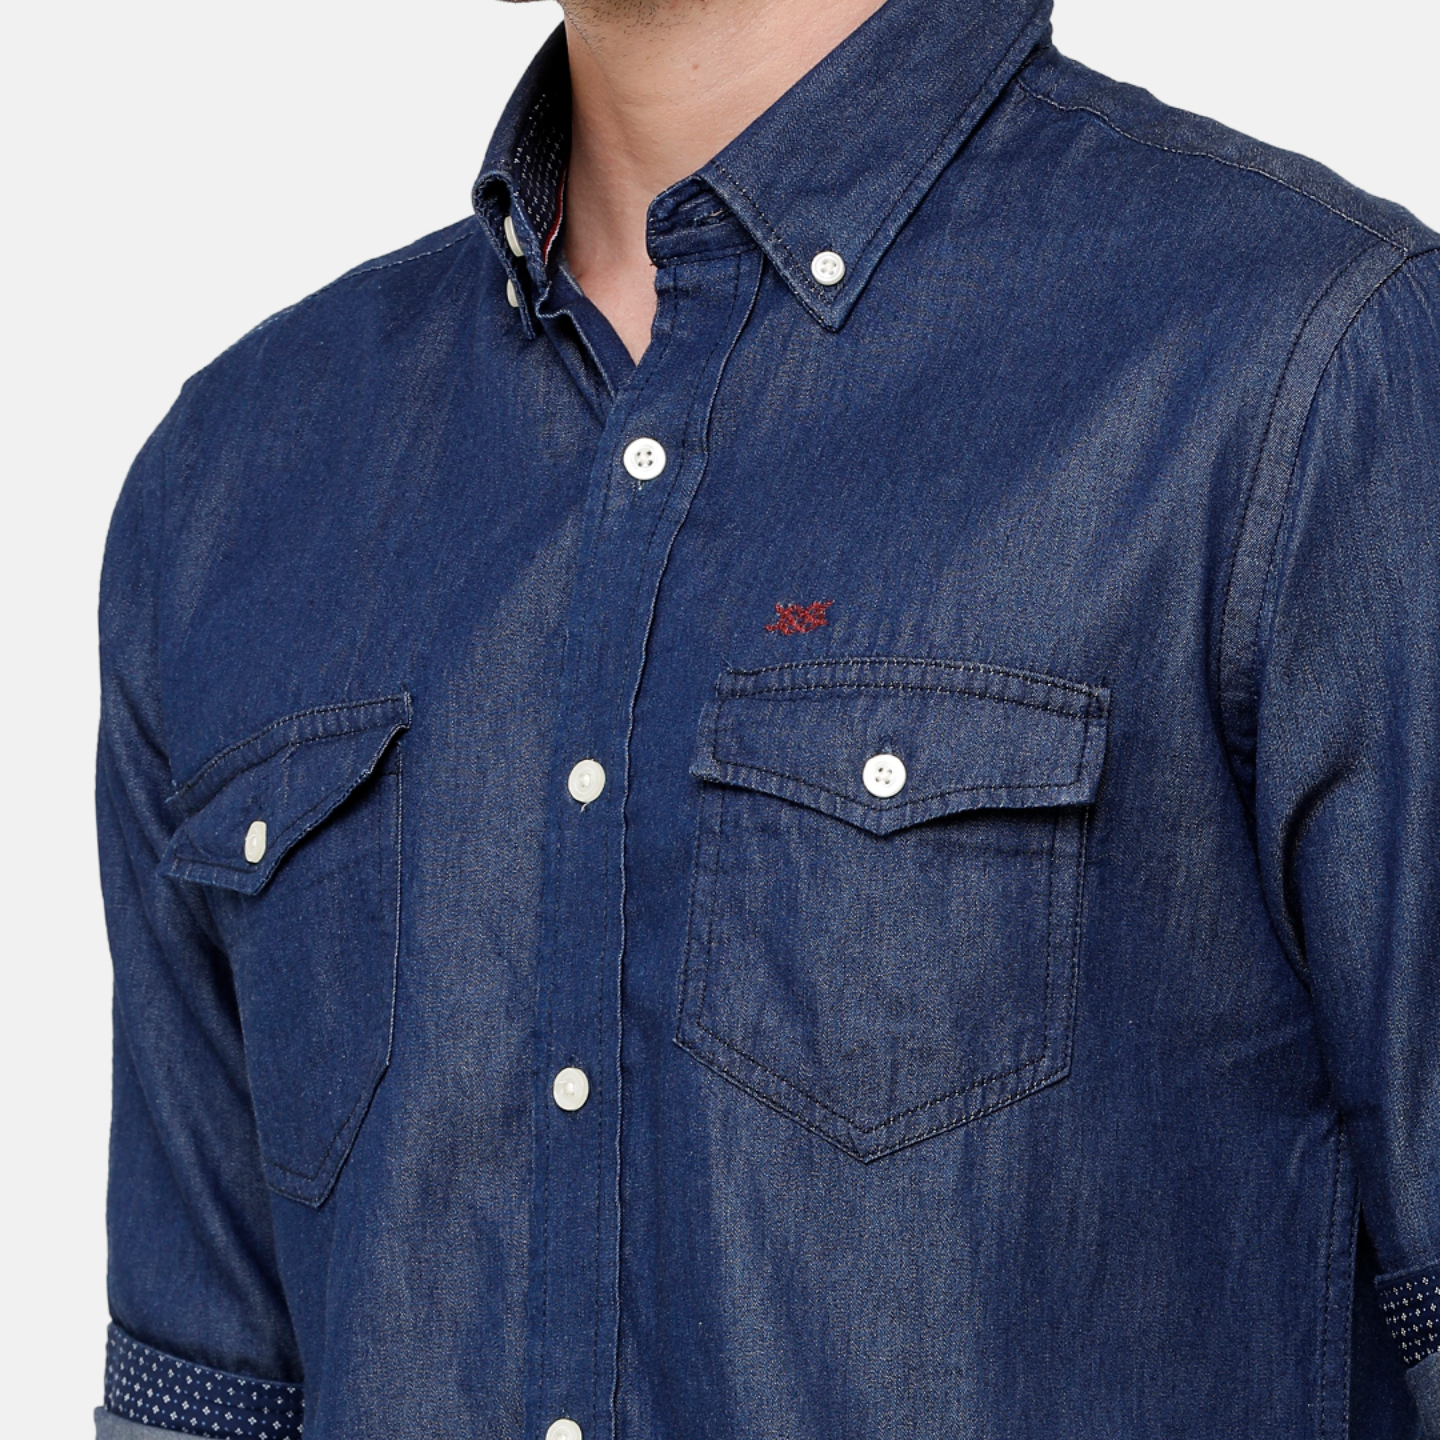 Double Two Mens Long Sleeves 100 Cotton Silky Denim with 2 Flap Pockets Shirt Casual Shirt